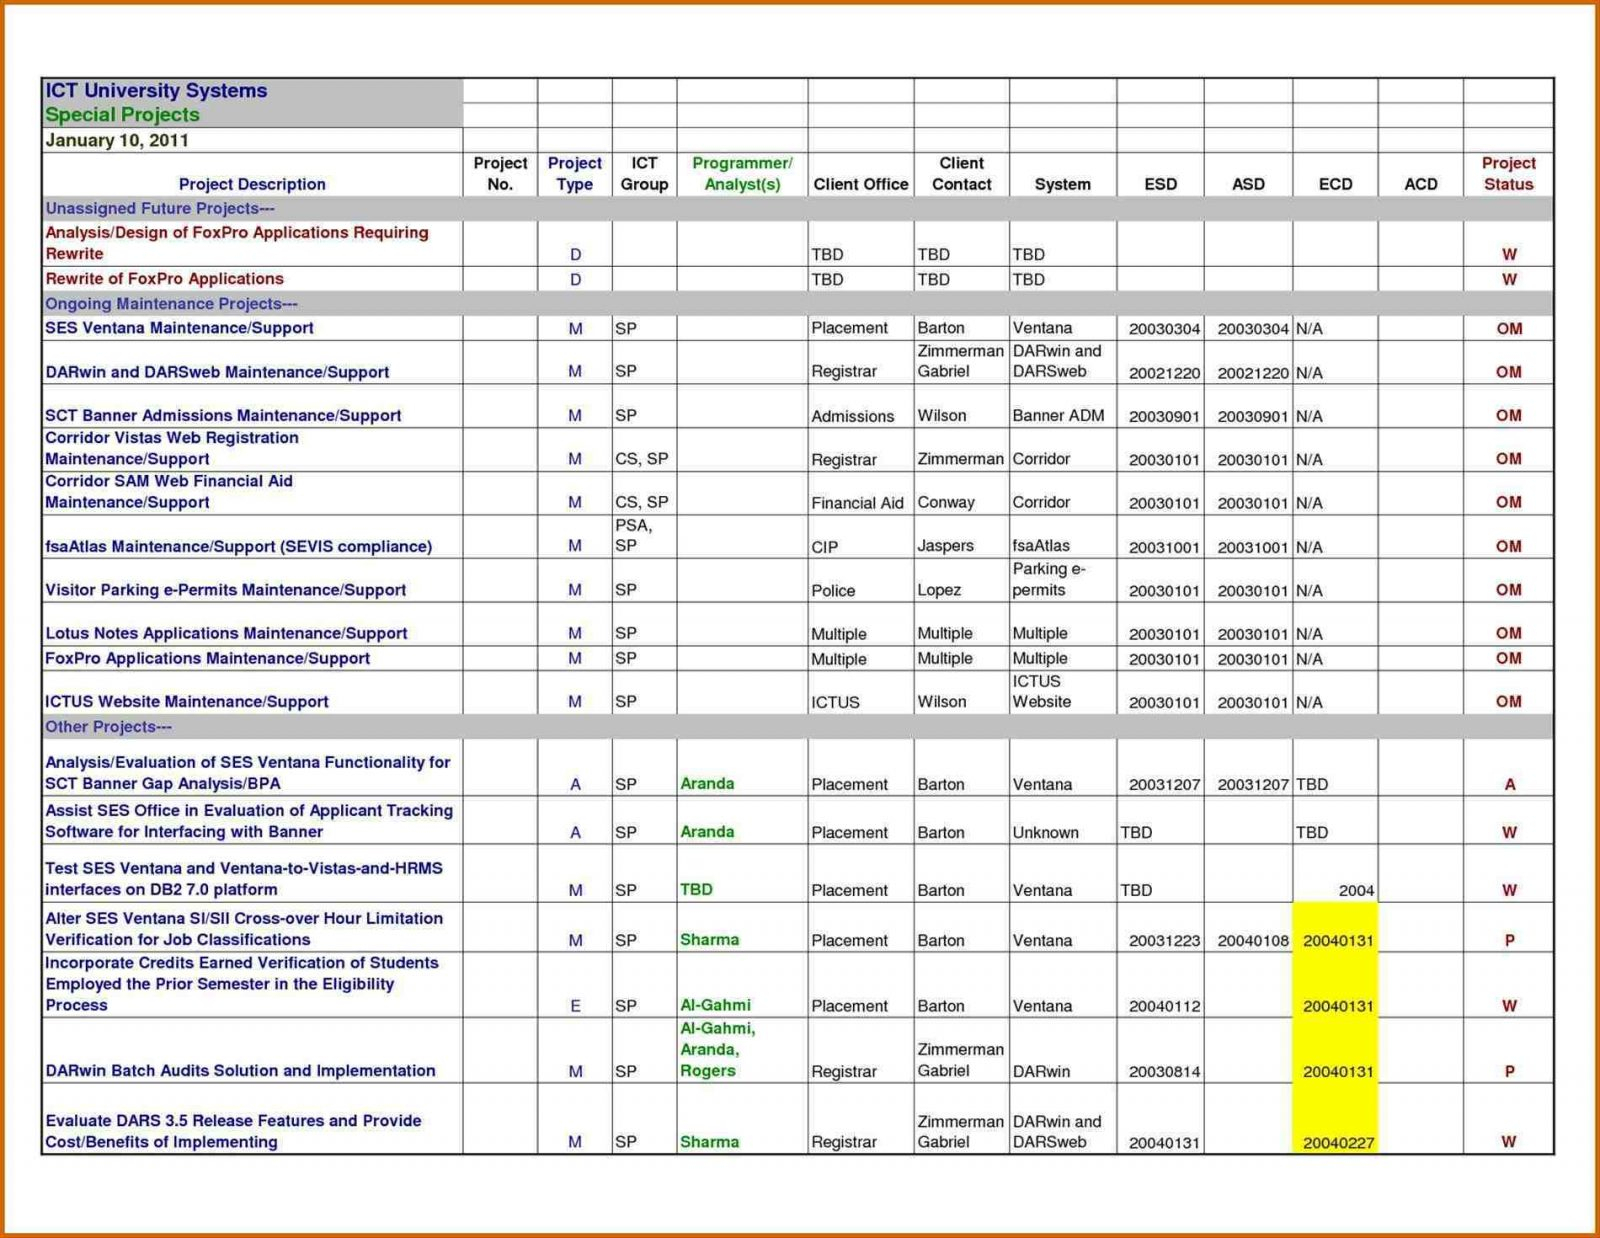 Requirements Tracking Spreadsheet In Example Of Project Tracking Excel Spreadsheet Sample Management Plan